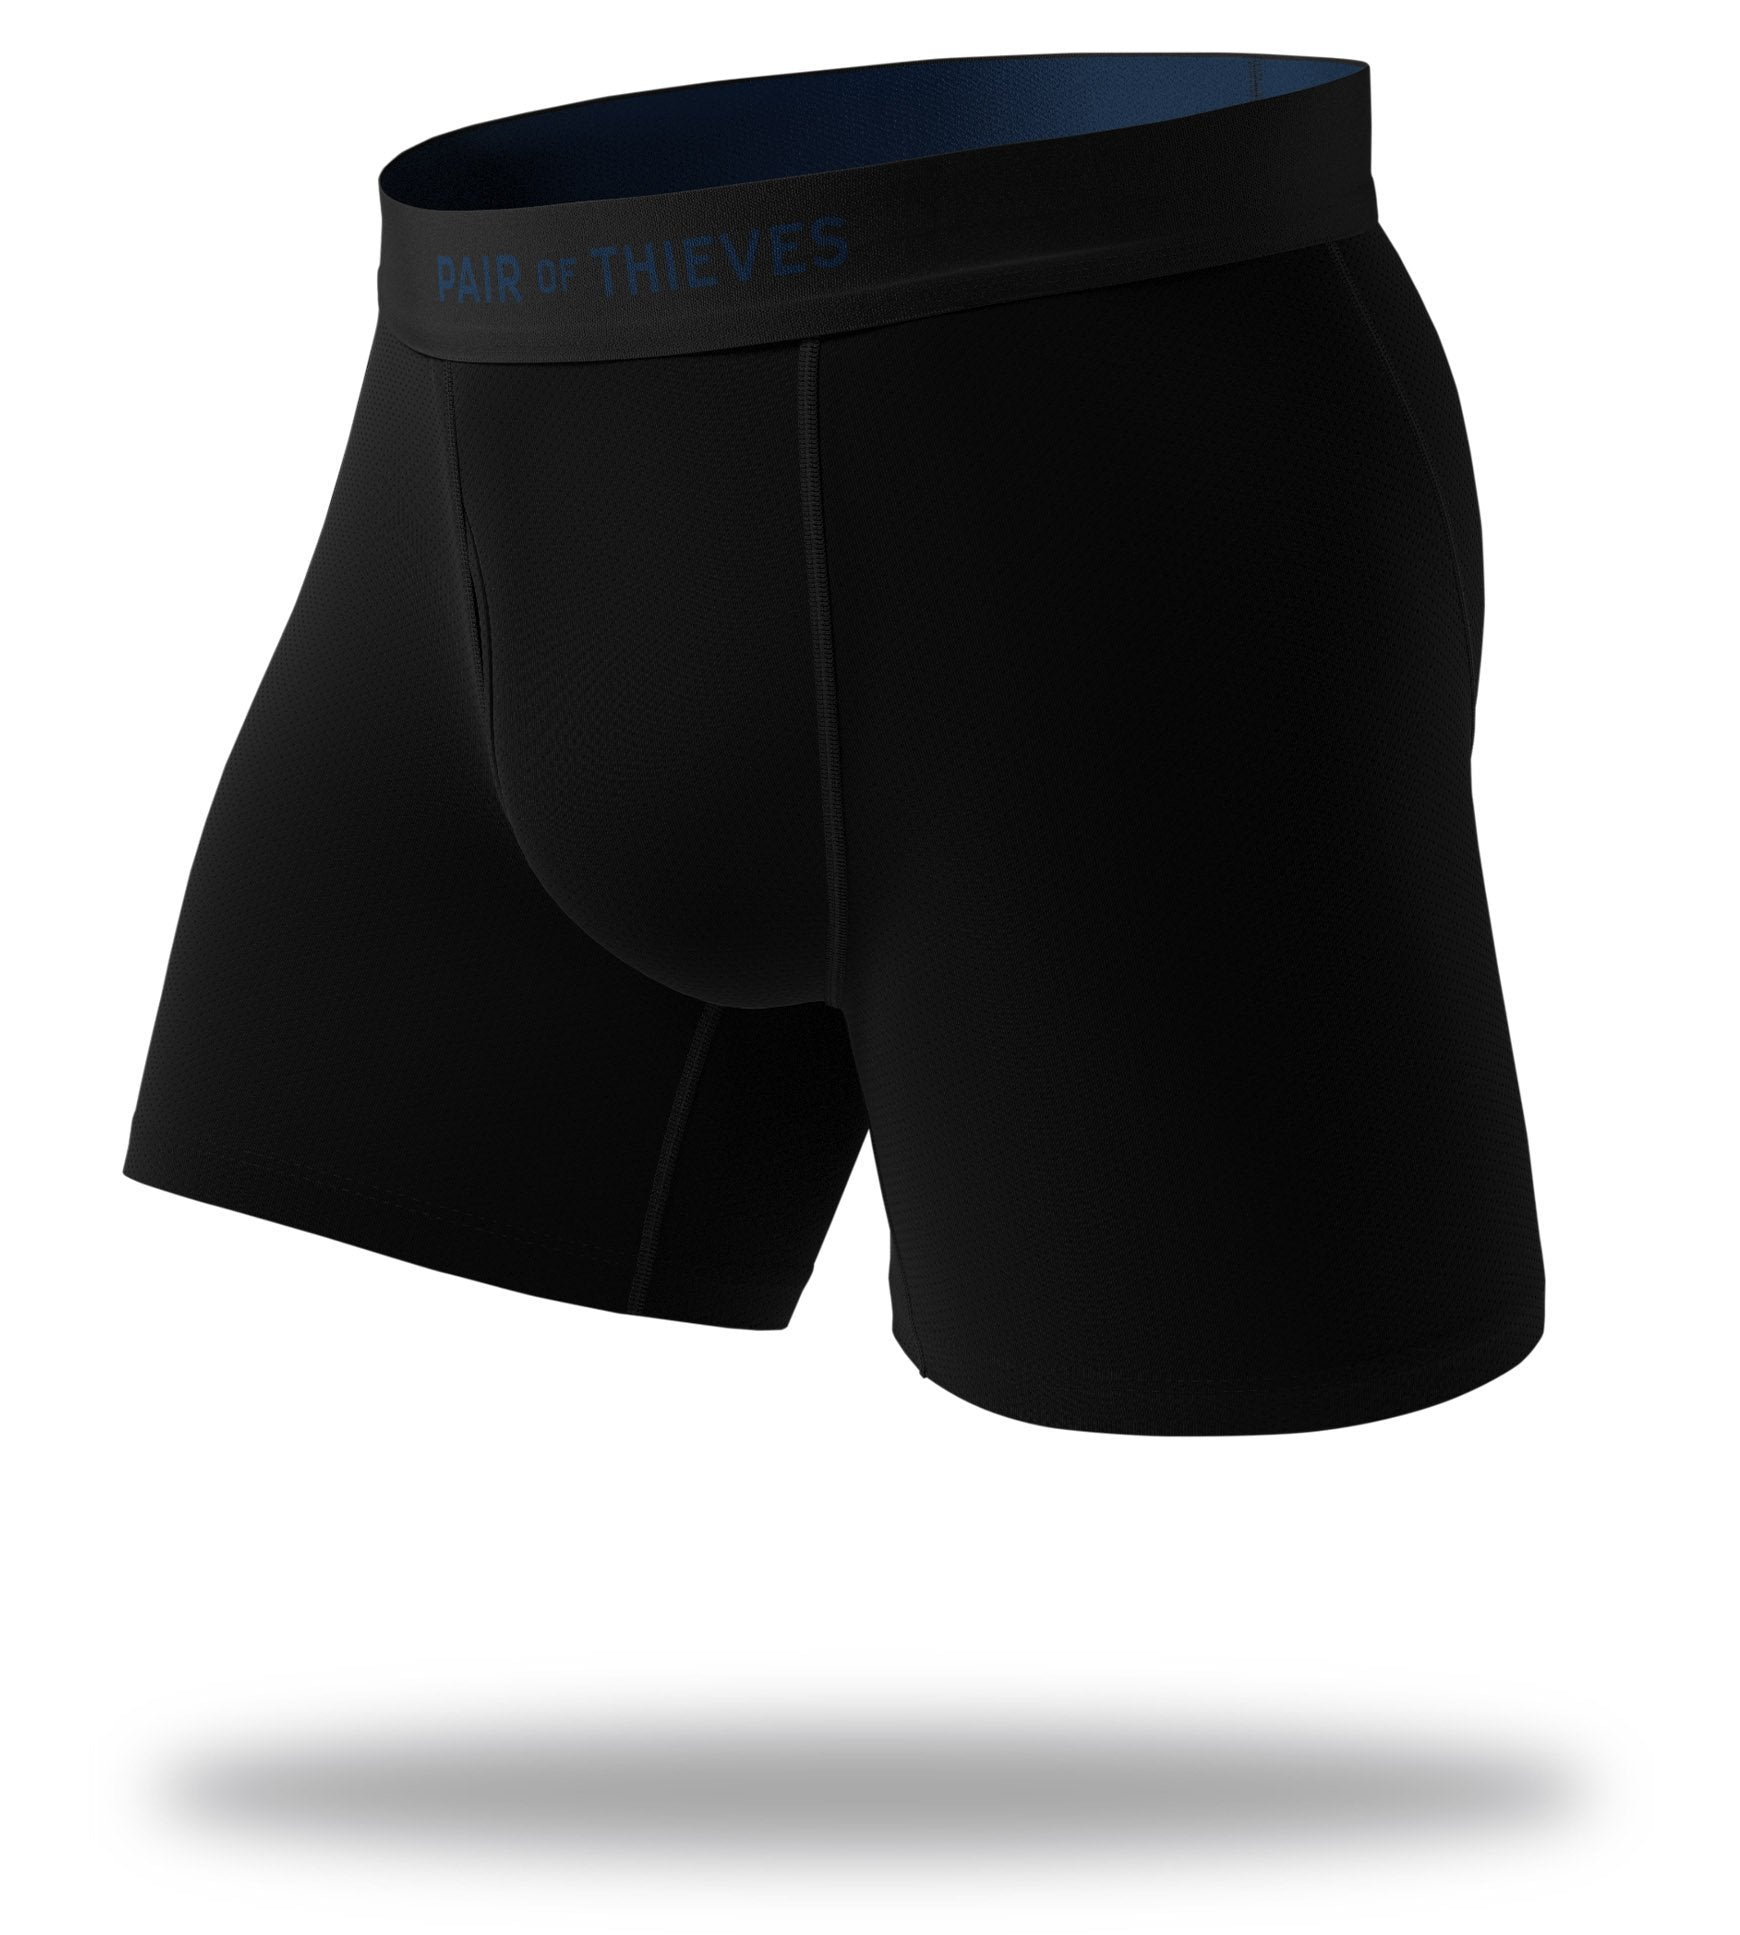 The Solid Black Navy Cool Breeze Boxer Briefs Front